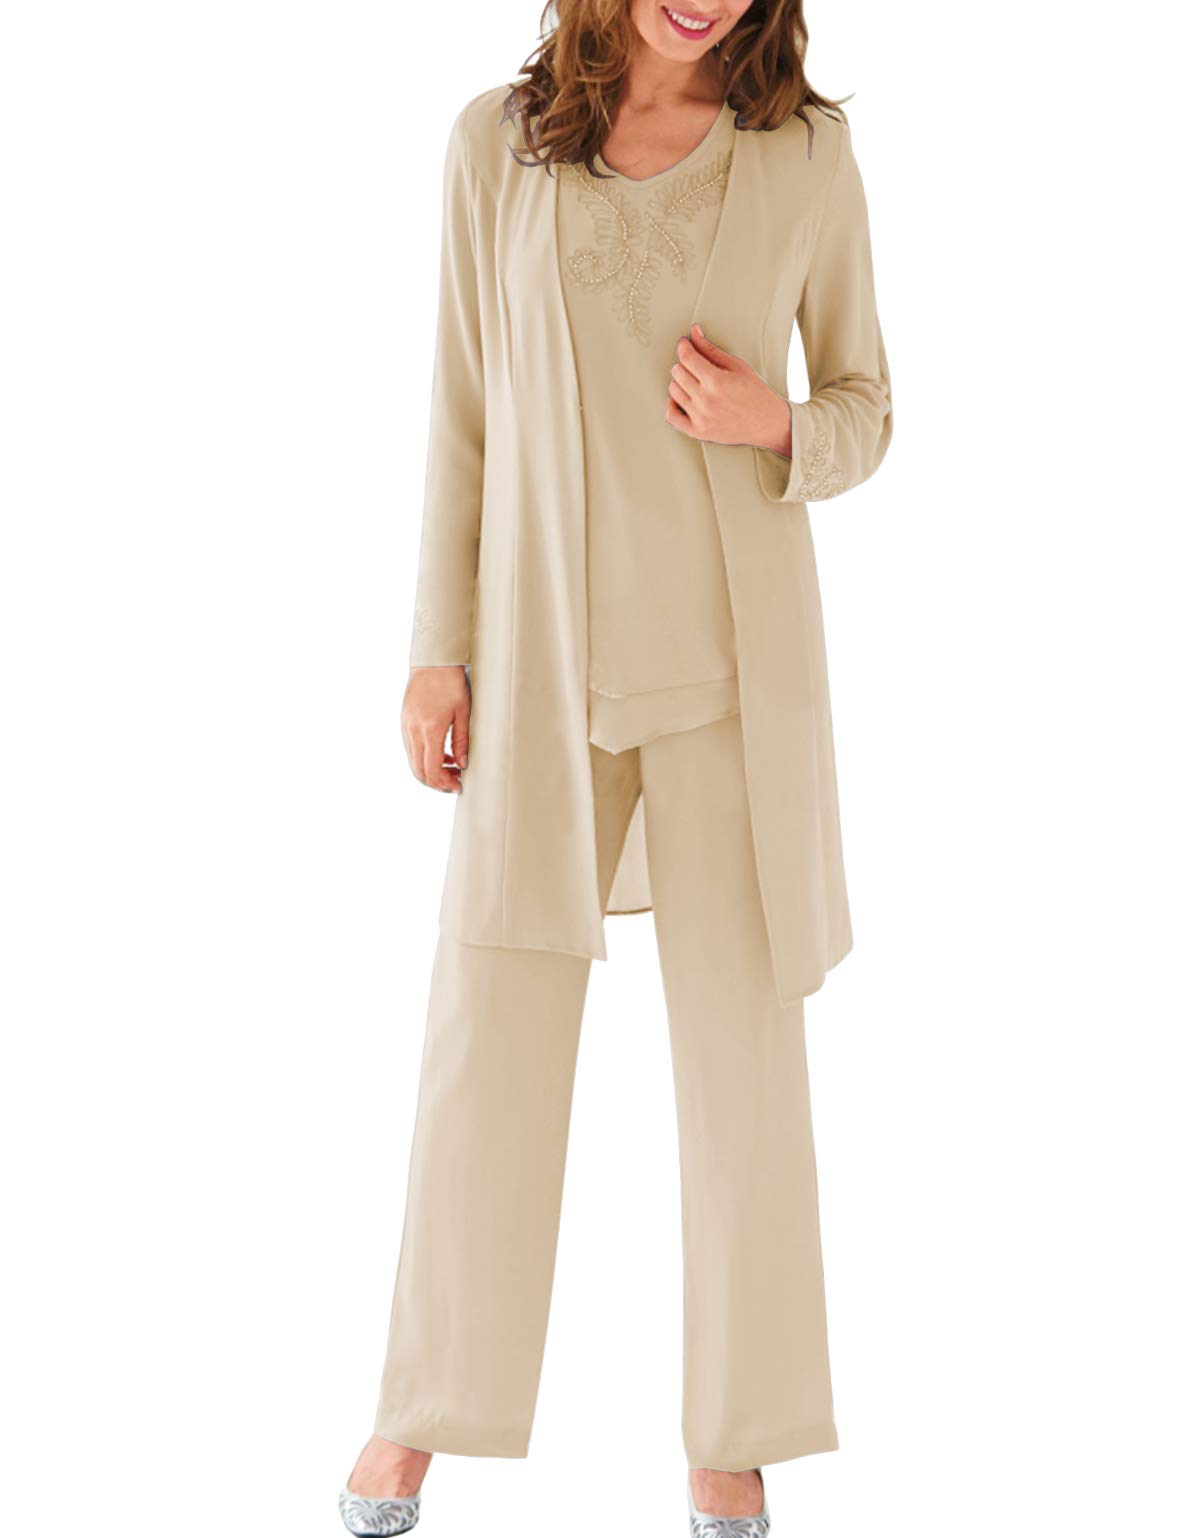 Womens 3 Pieces Formal Mother of Bride Dress Pant Suits with Jacket with Beaded Chiffon Outfits